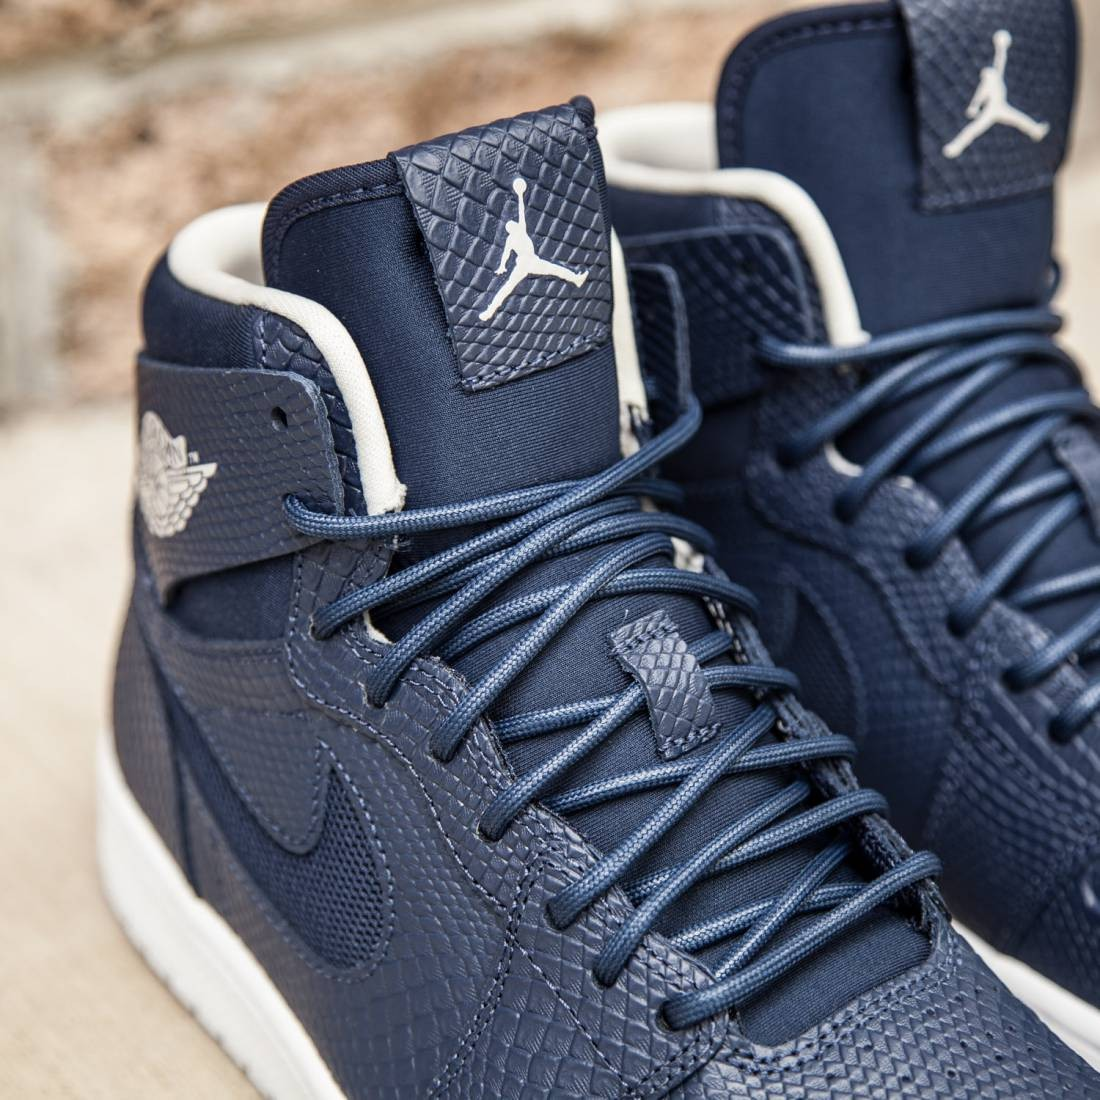 Air Jordan 1 Retro High Nouveau Men (midnight navy   white   infrared 23    light bone) 0cd638a2c0ab